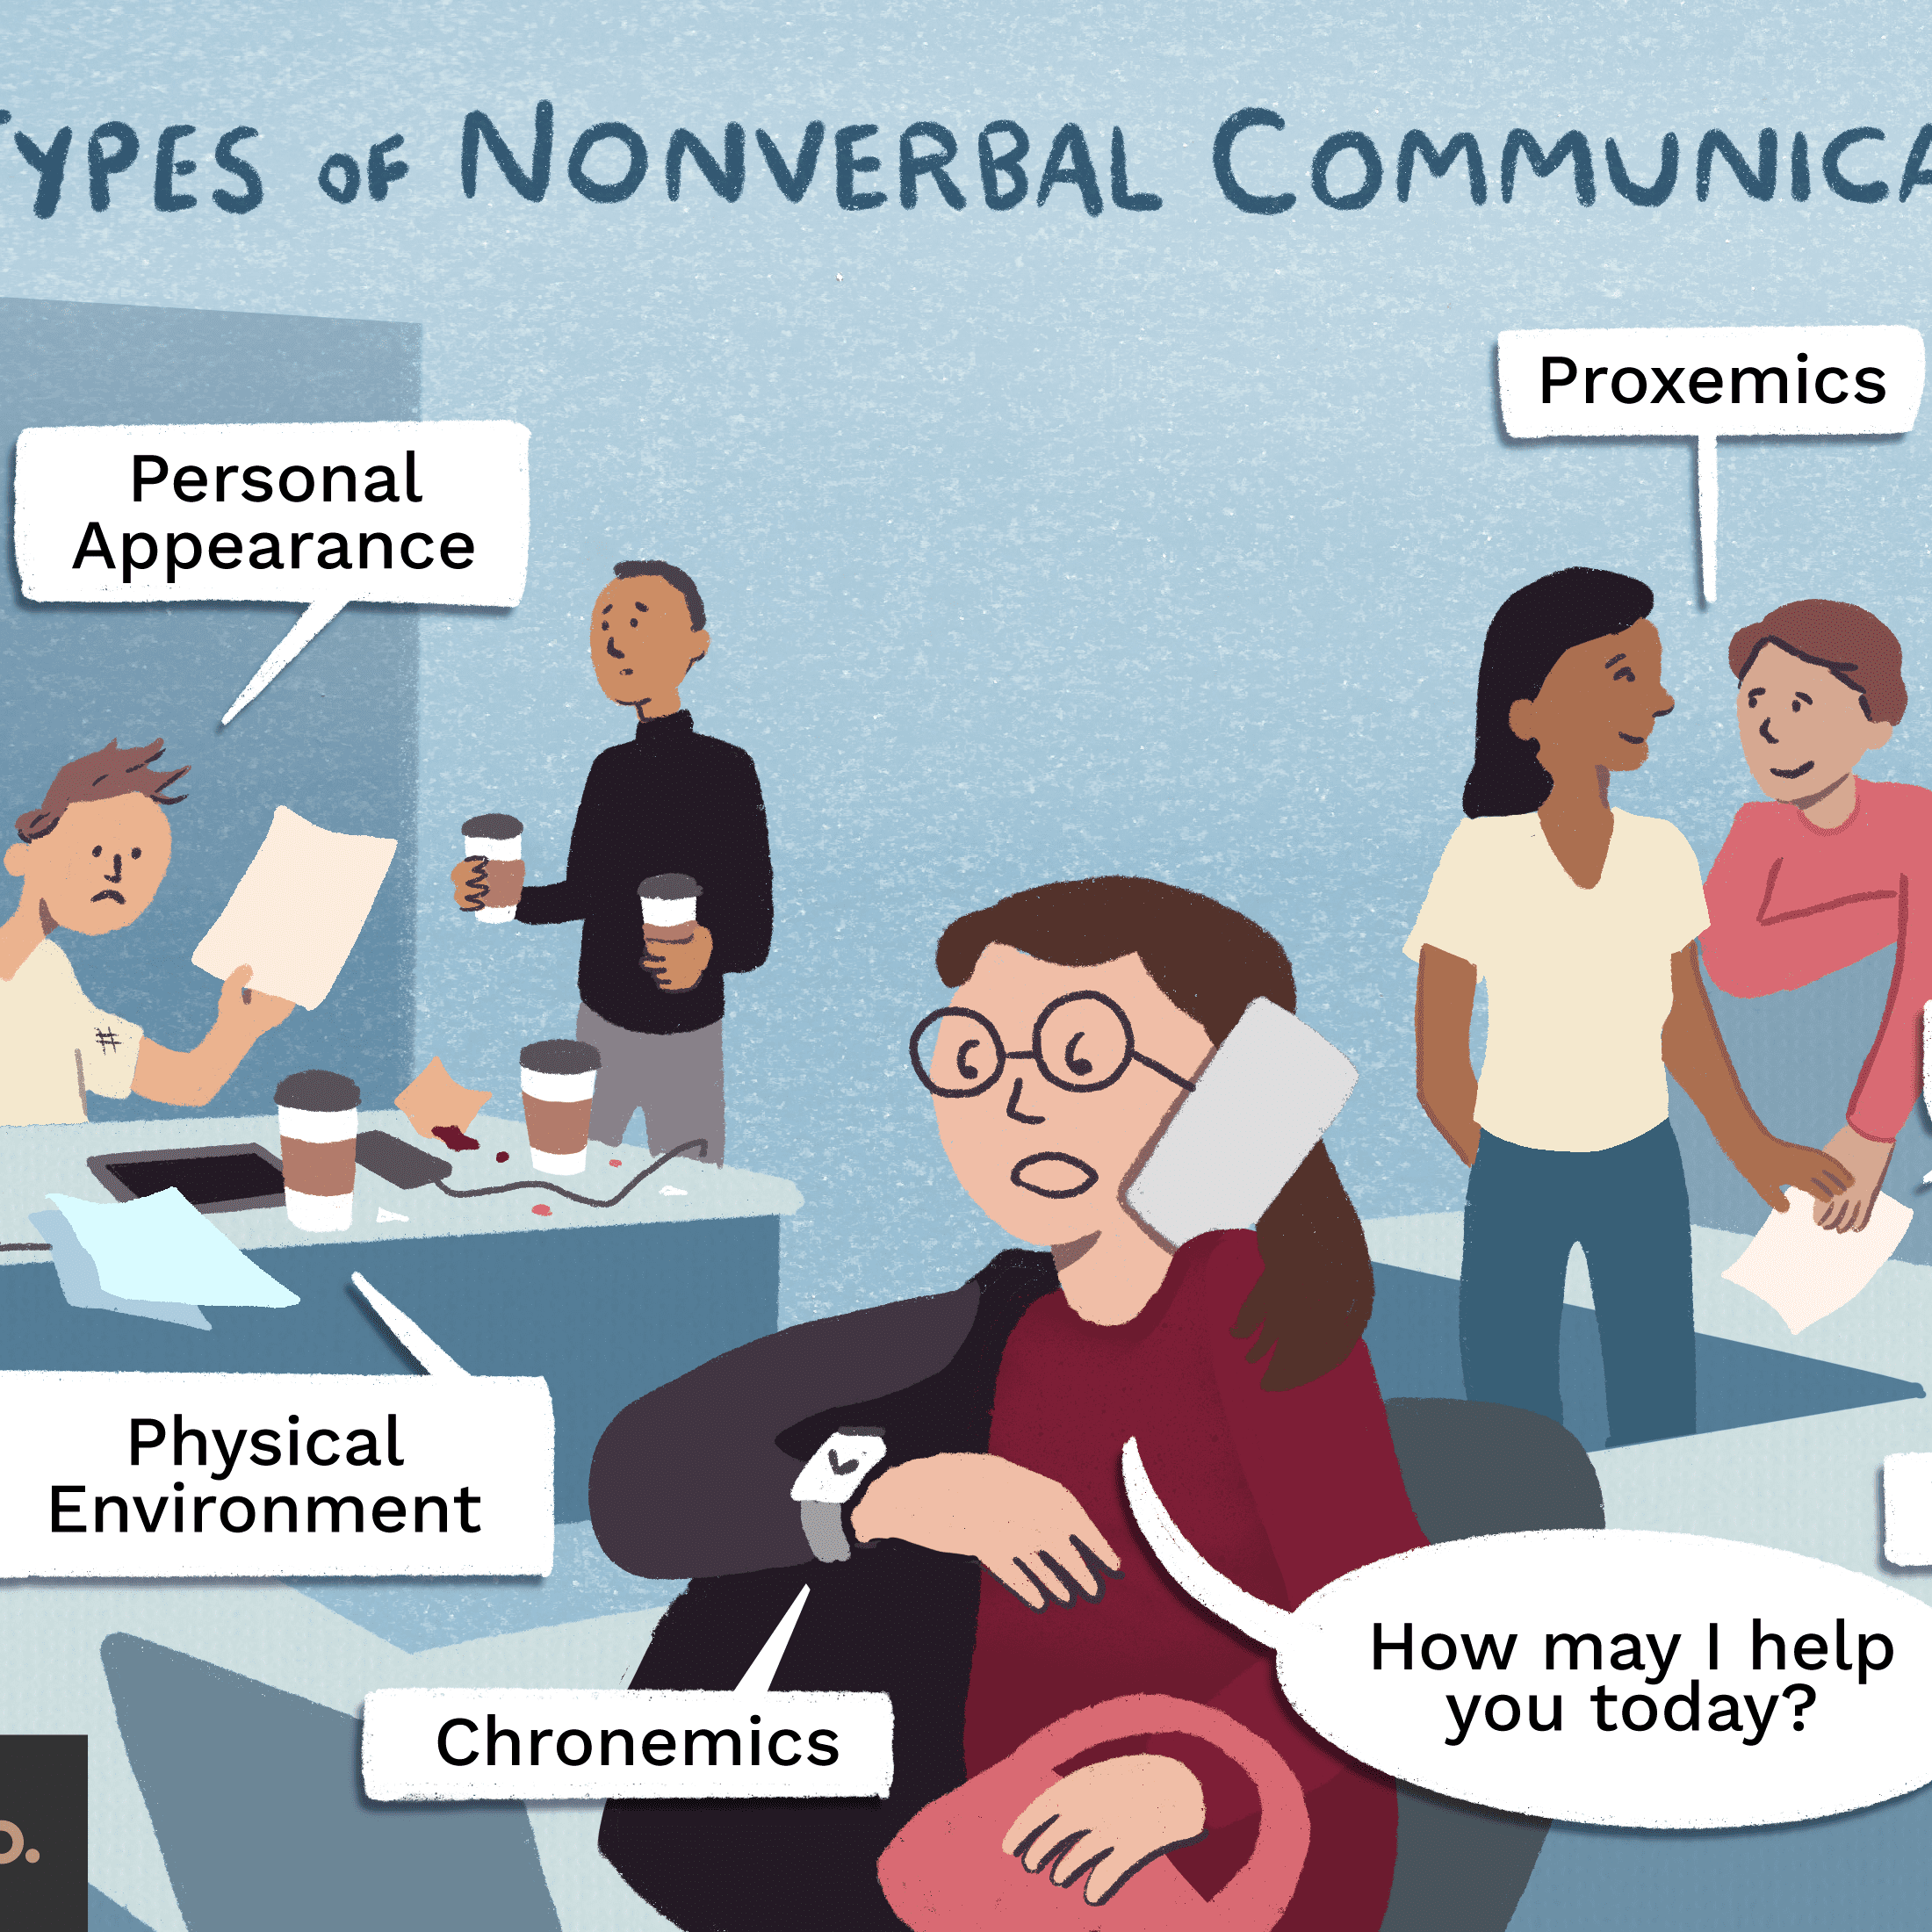 What Is Nonverbal Communication Computer‐mediated communication (cmc) has been described as lacking nonverbal cues, which affects the nature of interpersonal interaction via the medium. what is nonverbal communication